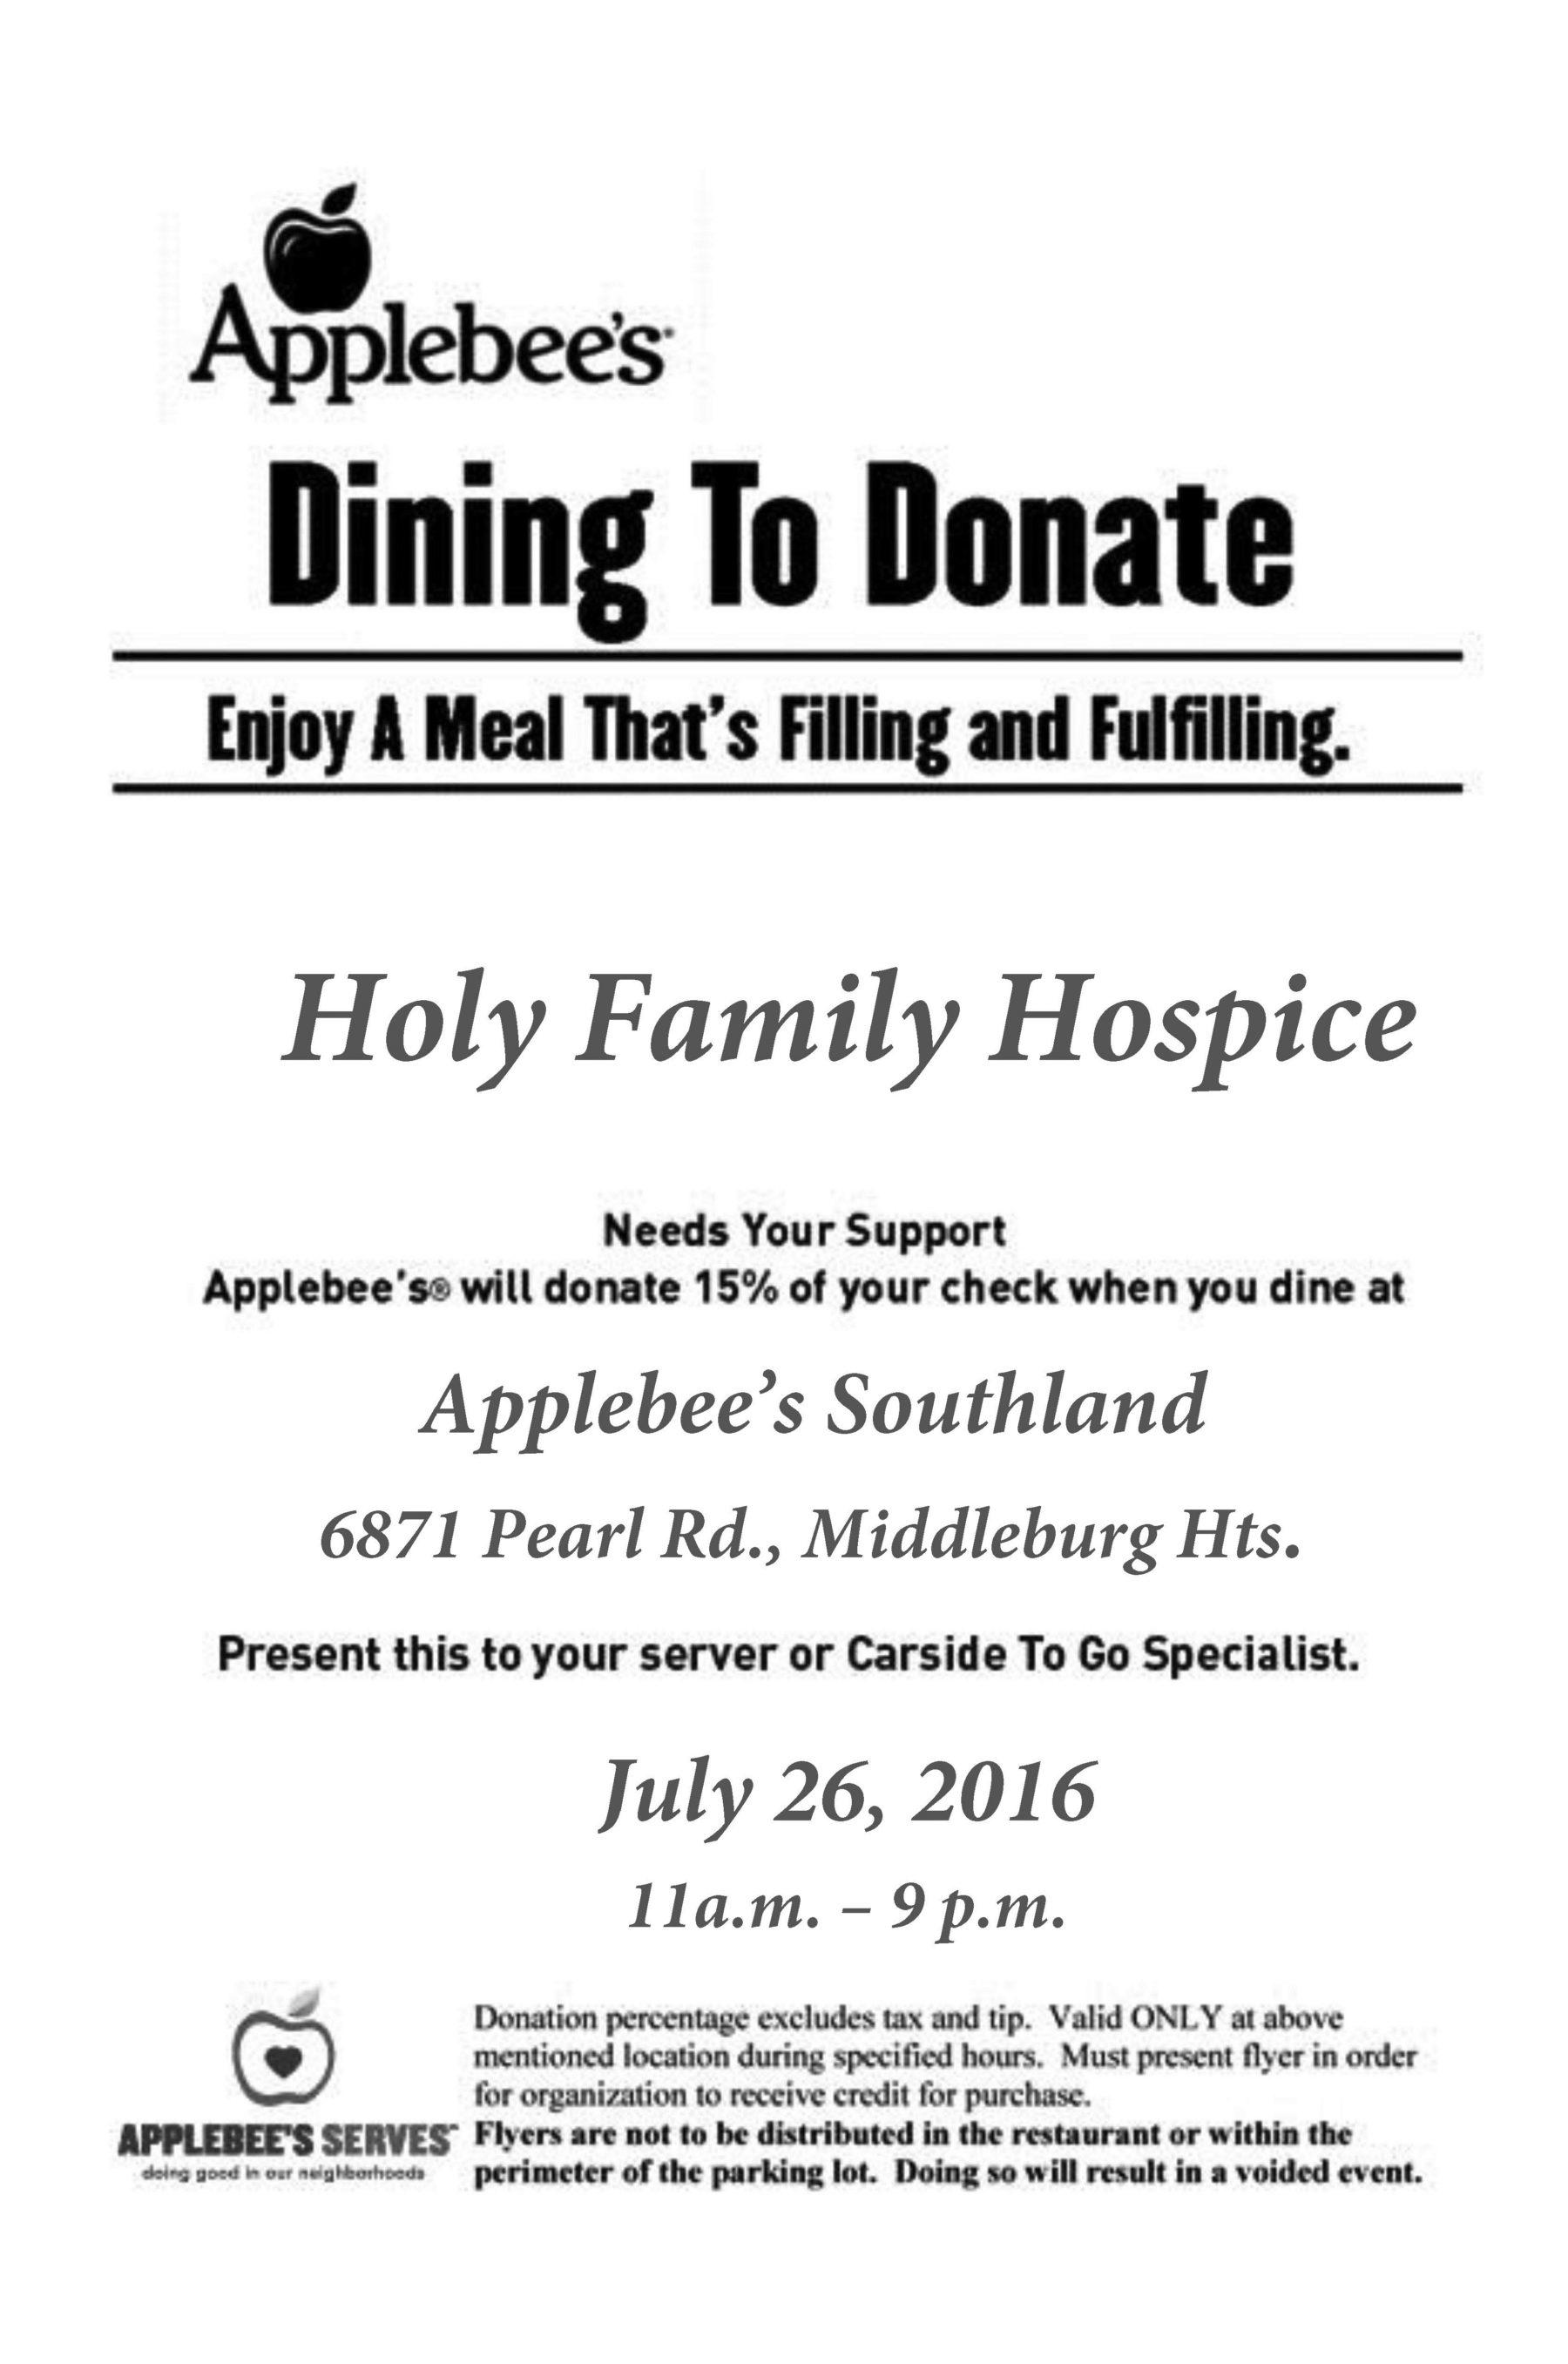 Dine to Donate at Applebees St Augustine Health Ministries – Donation Flyer Template